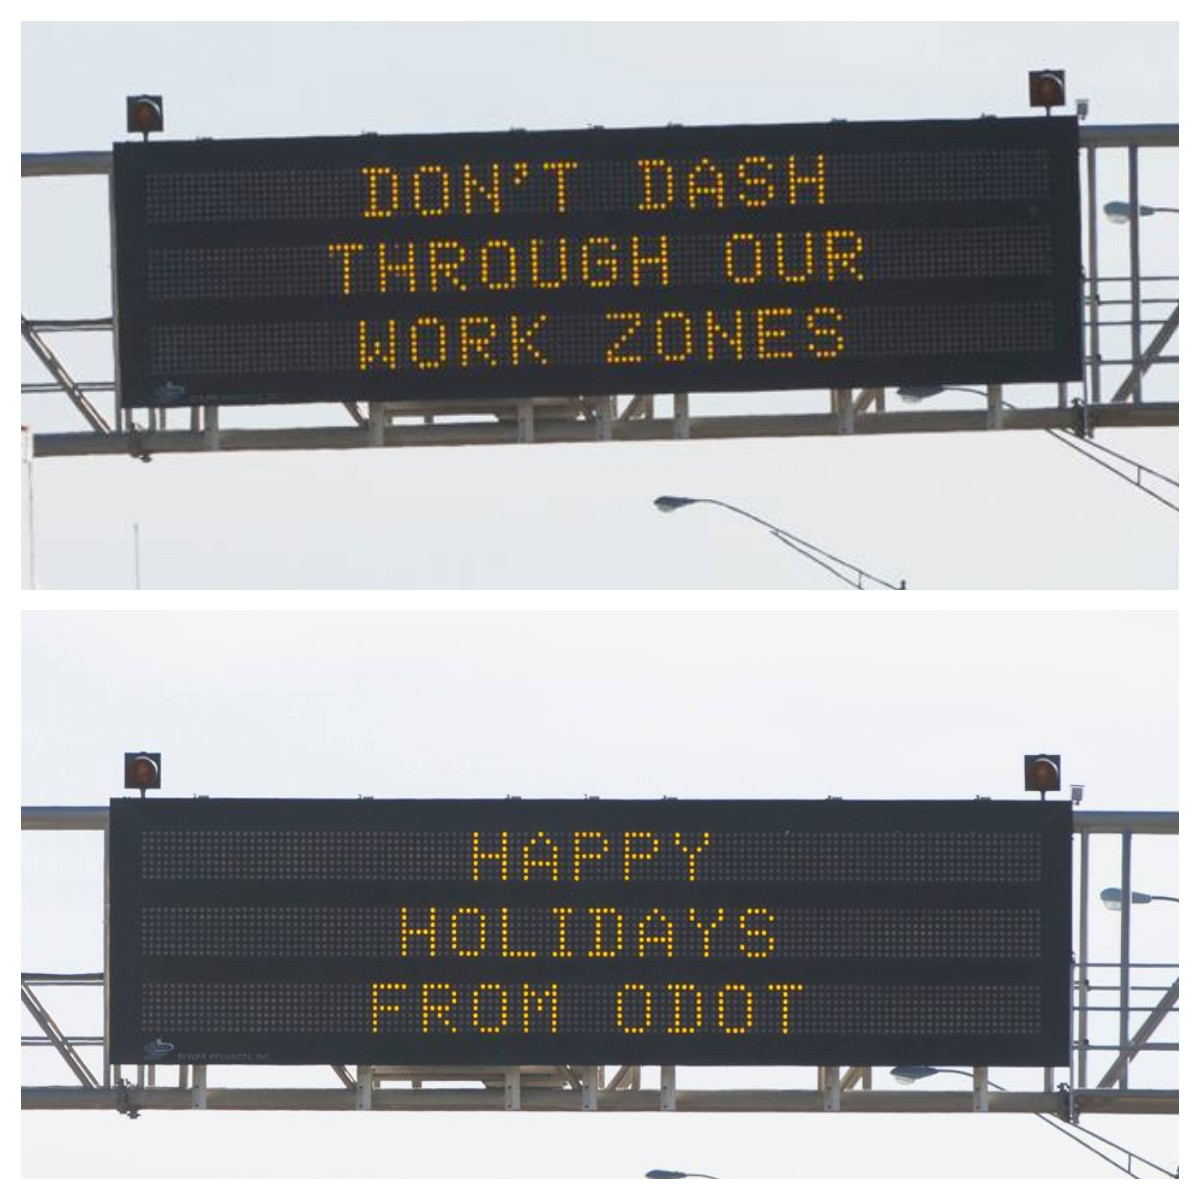 /content/dam/ok/en/odot/images/message-signs/12.21.16-1.jpg